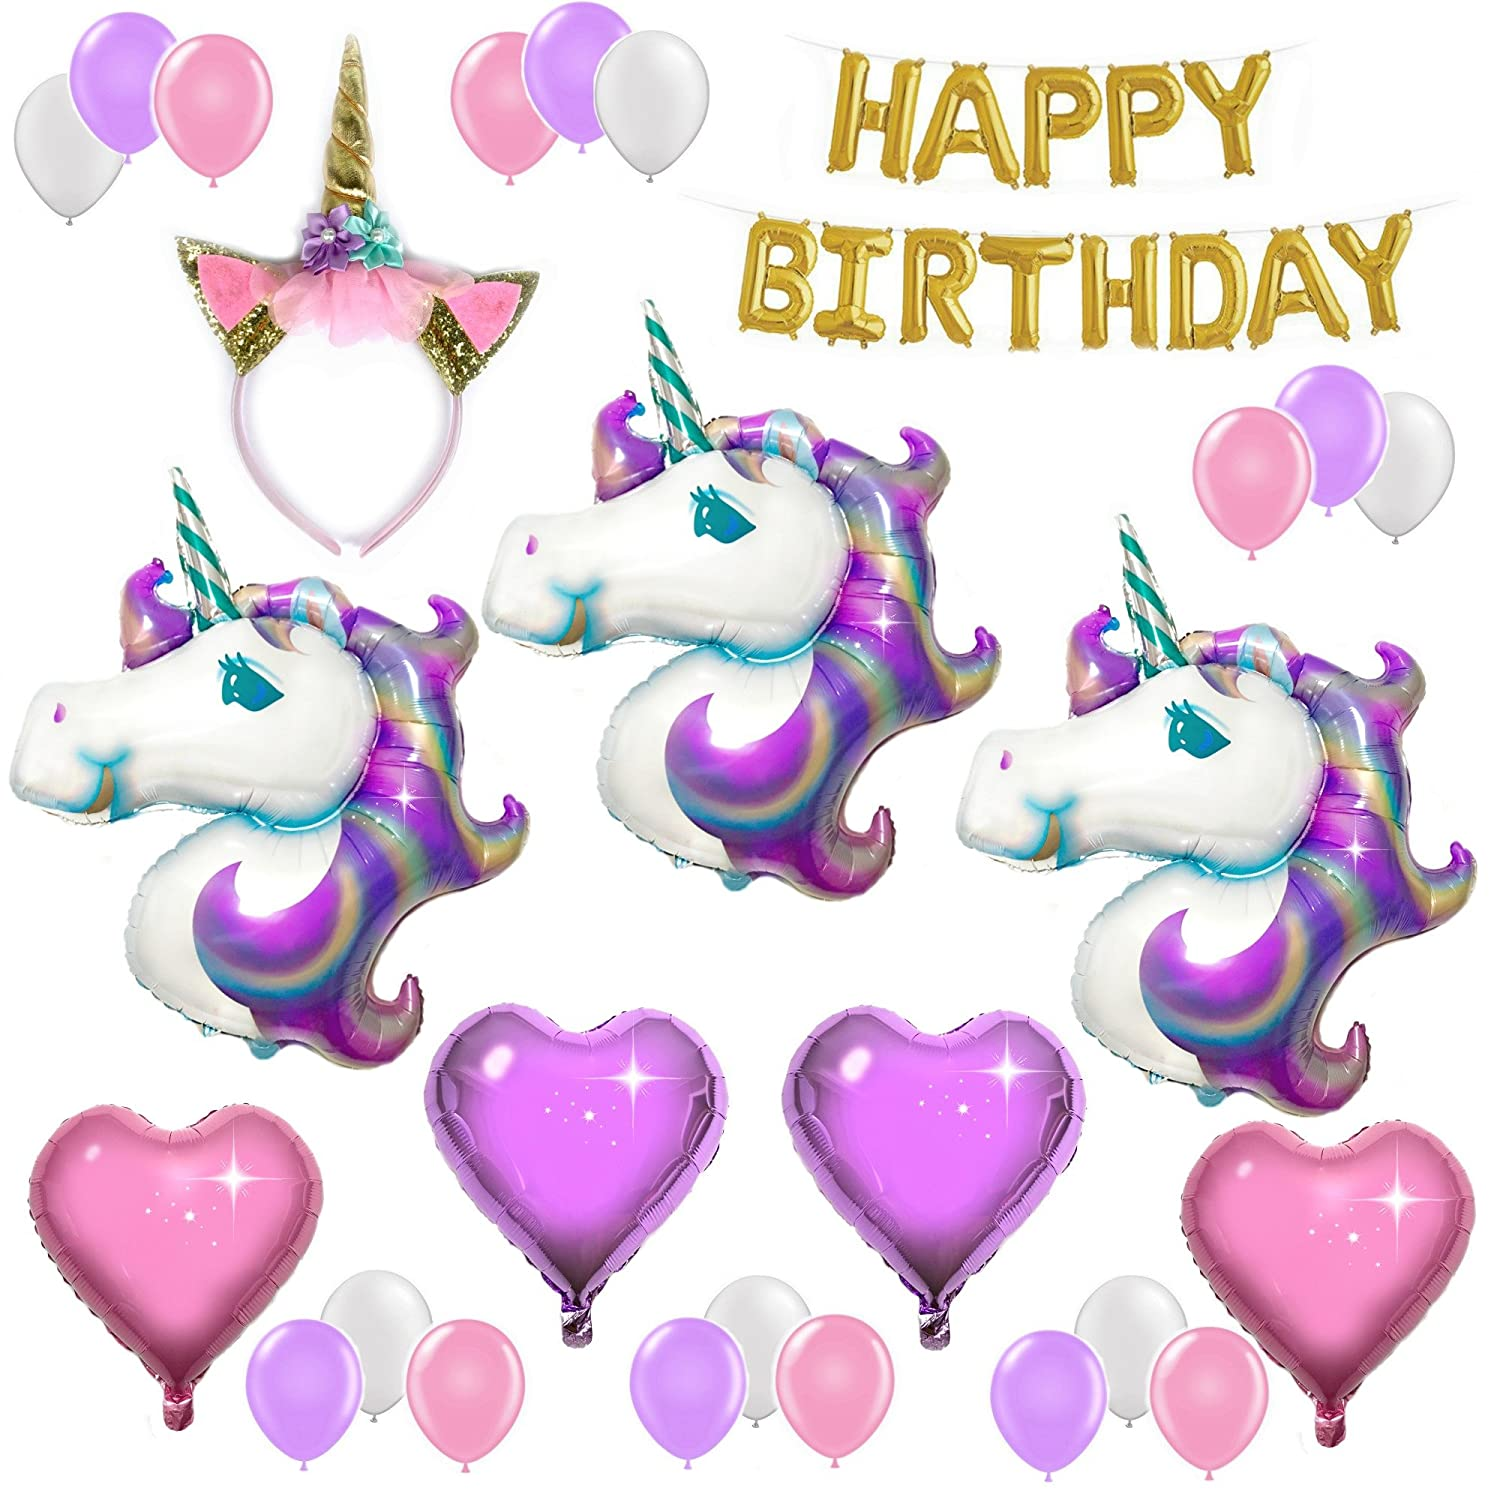 UNICORN PARTY SUPPLIES and PARTY DECORATIONS | Unicorn Balloons with Happy Birthday Banner and Glitter Unicorn Headband - Unicorn Theme Party Pack - 3 Unicorns, Foil Hearts, and Latex Balloons Live Love Logistics